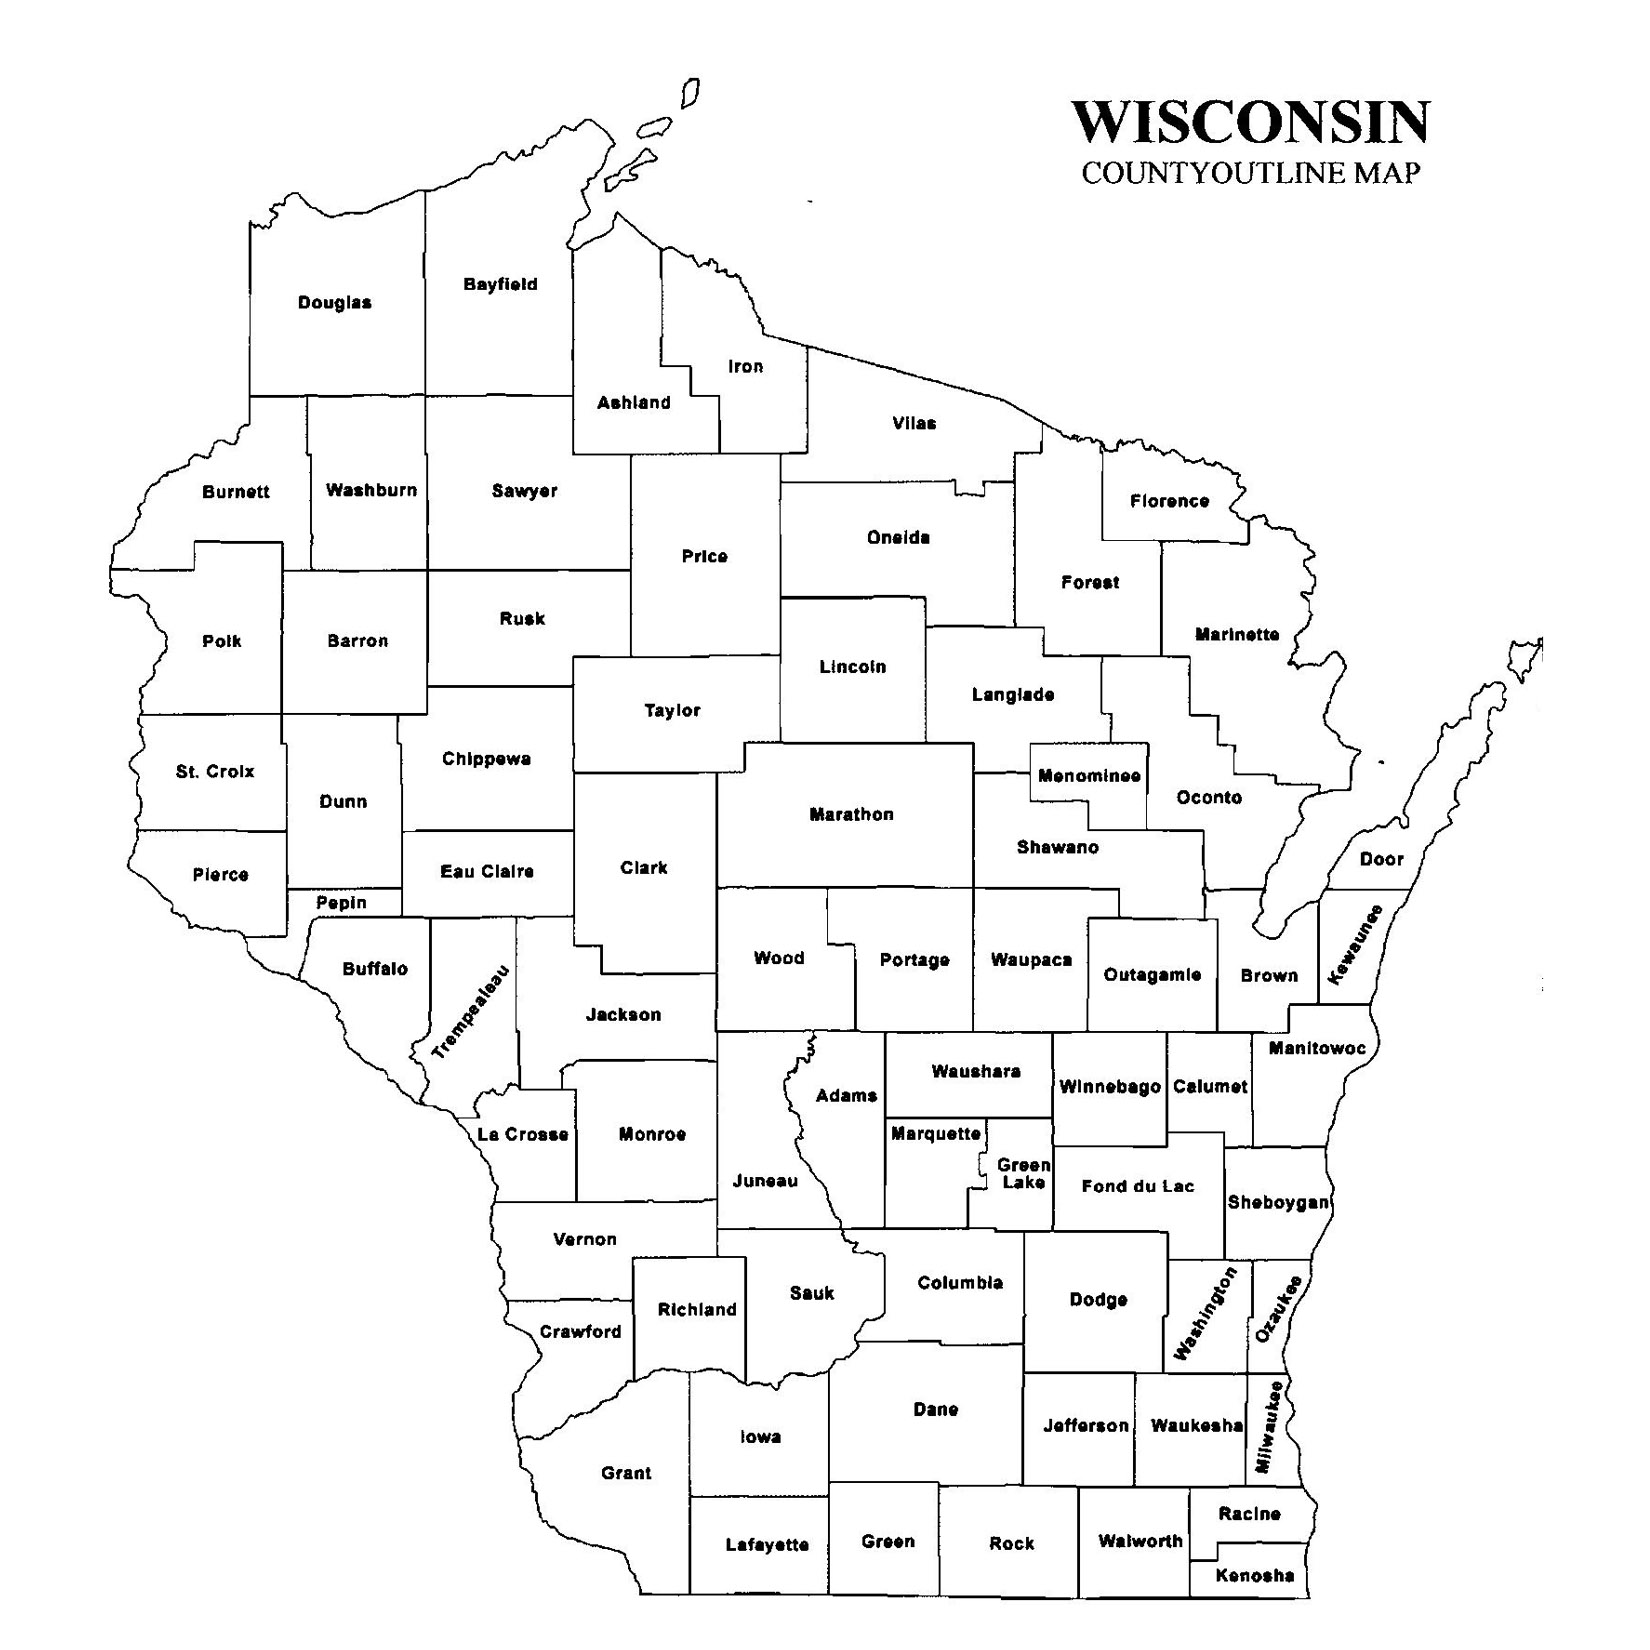 Wisconsin County Map JigsawGenealogy